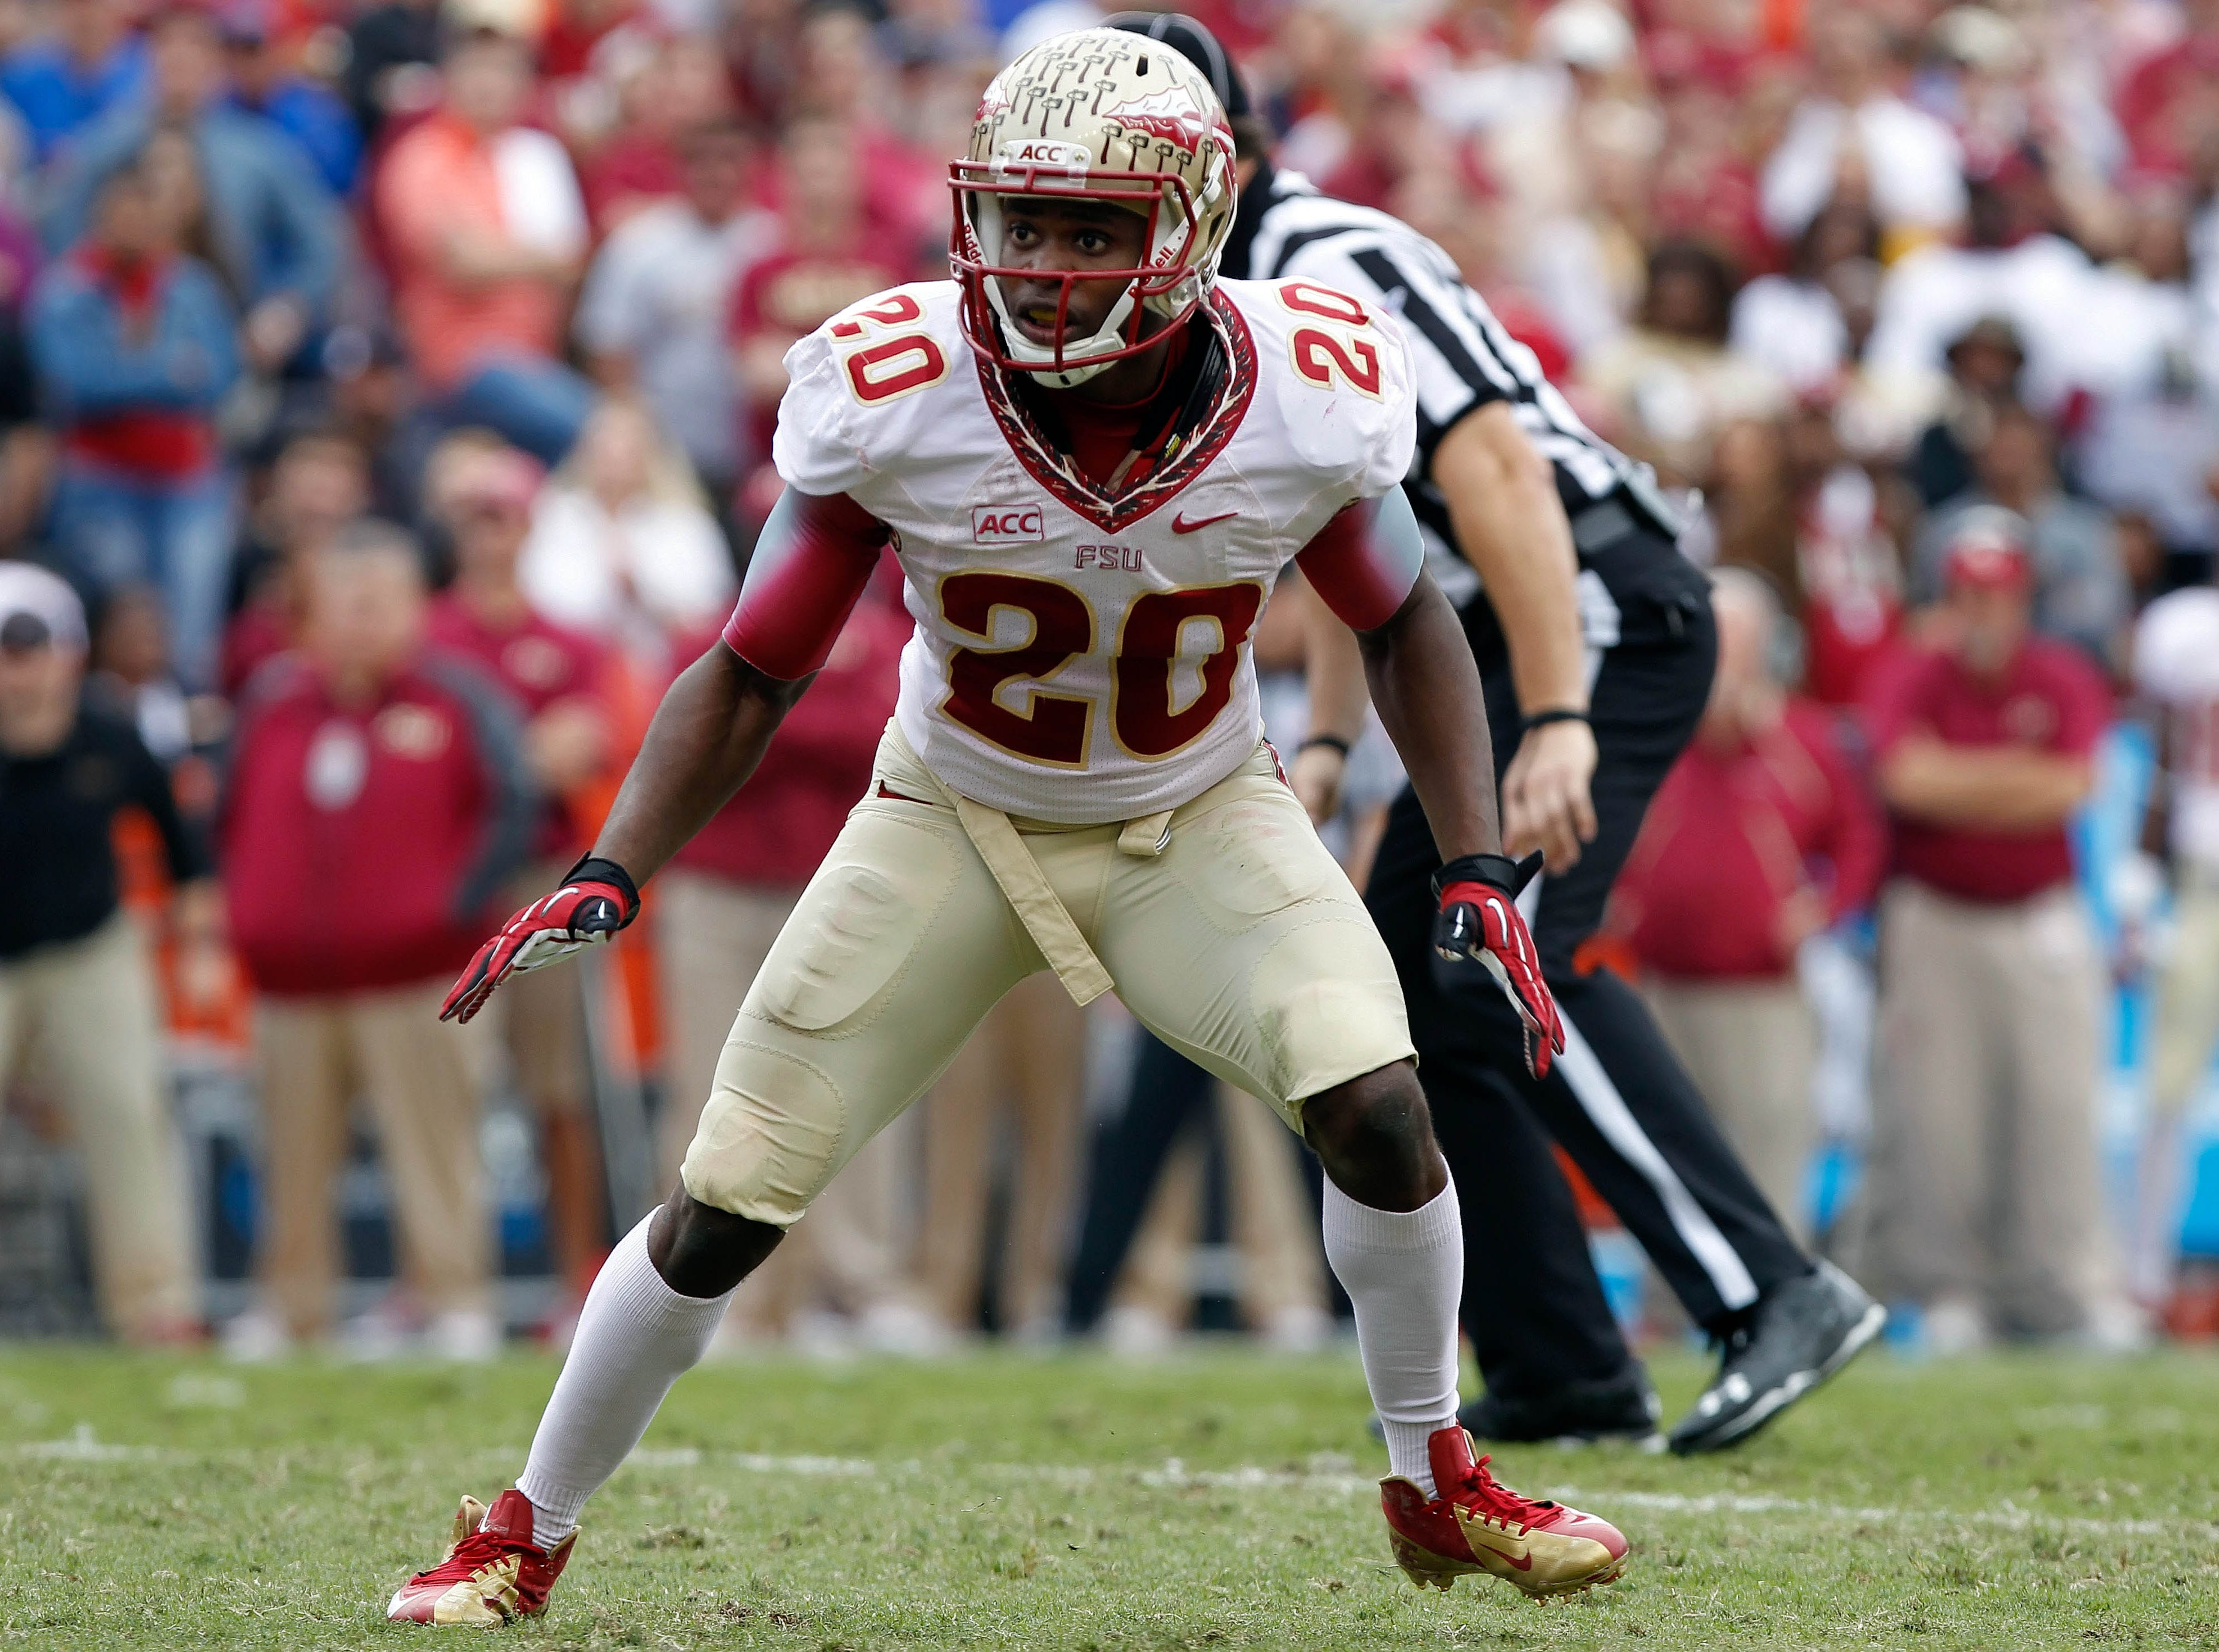 Nov 30, 2013; Gainesville, FL, USA; Florida State Seminoles defensive back Lamarcus Joyner (20) rushes during the first quarter against the Florida Gators at Ben Hill Griffin Stadium. Mandatory Credit: Kim Klement-USA TODAY Sports